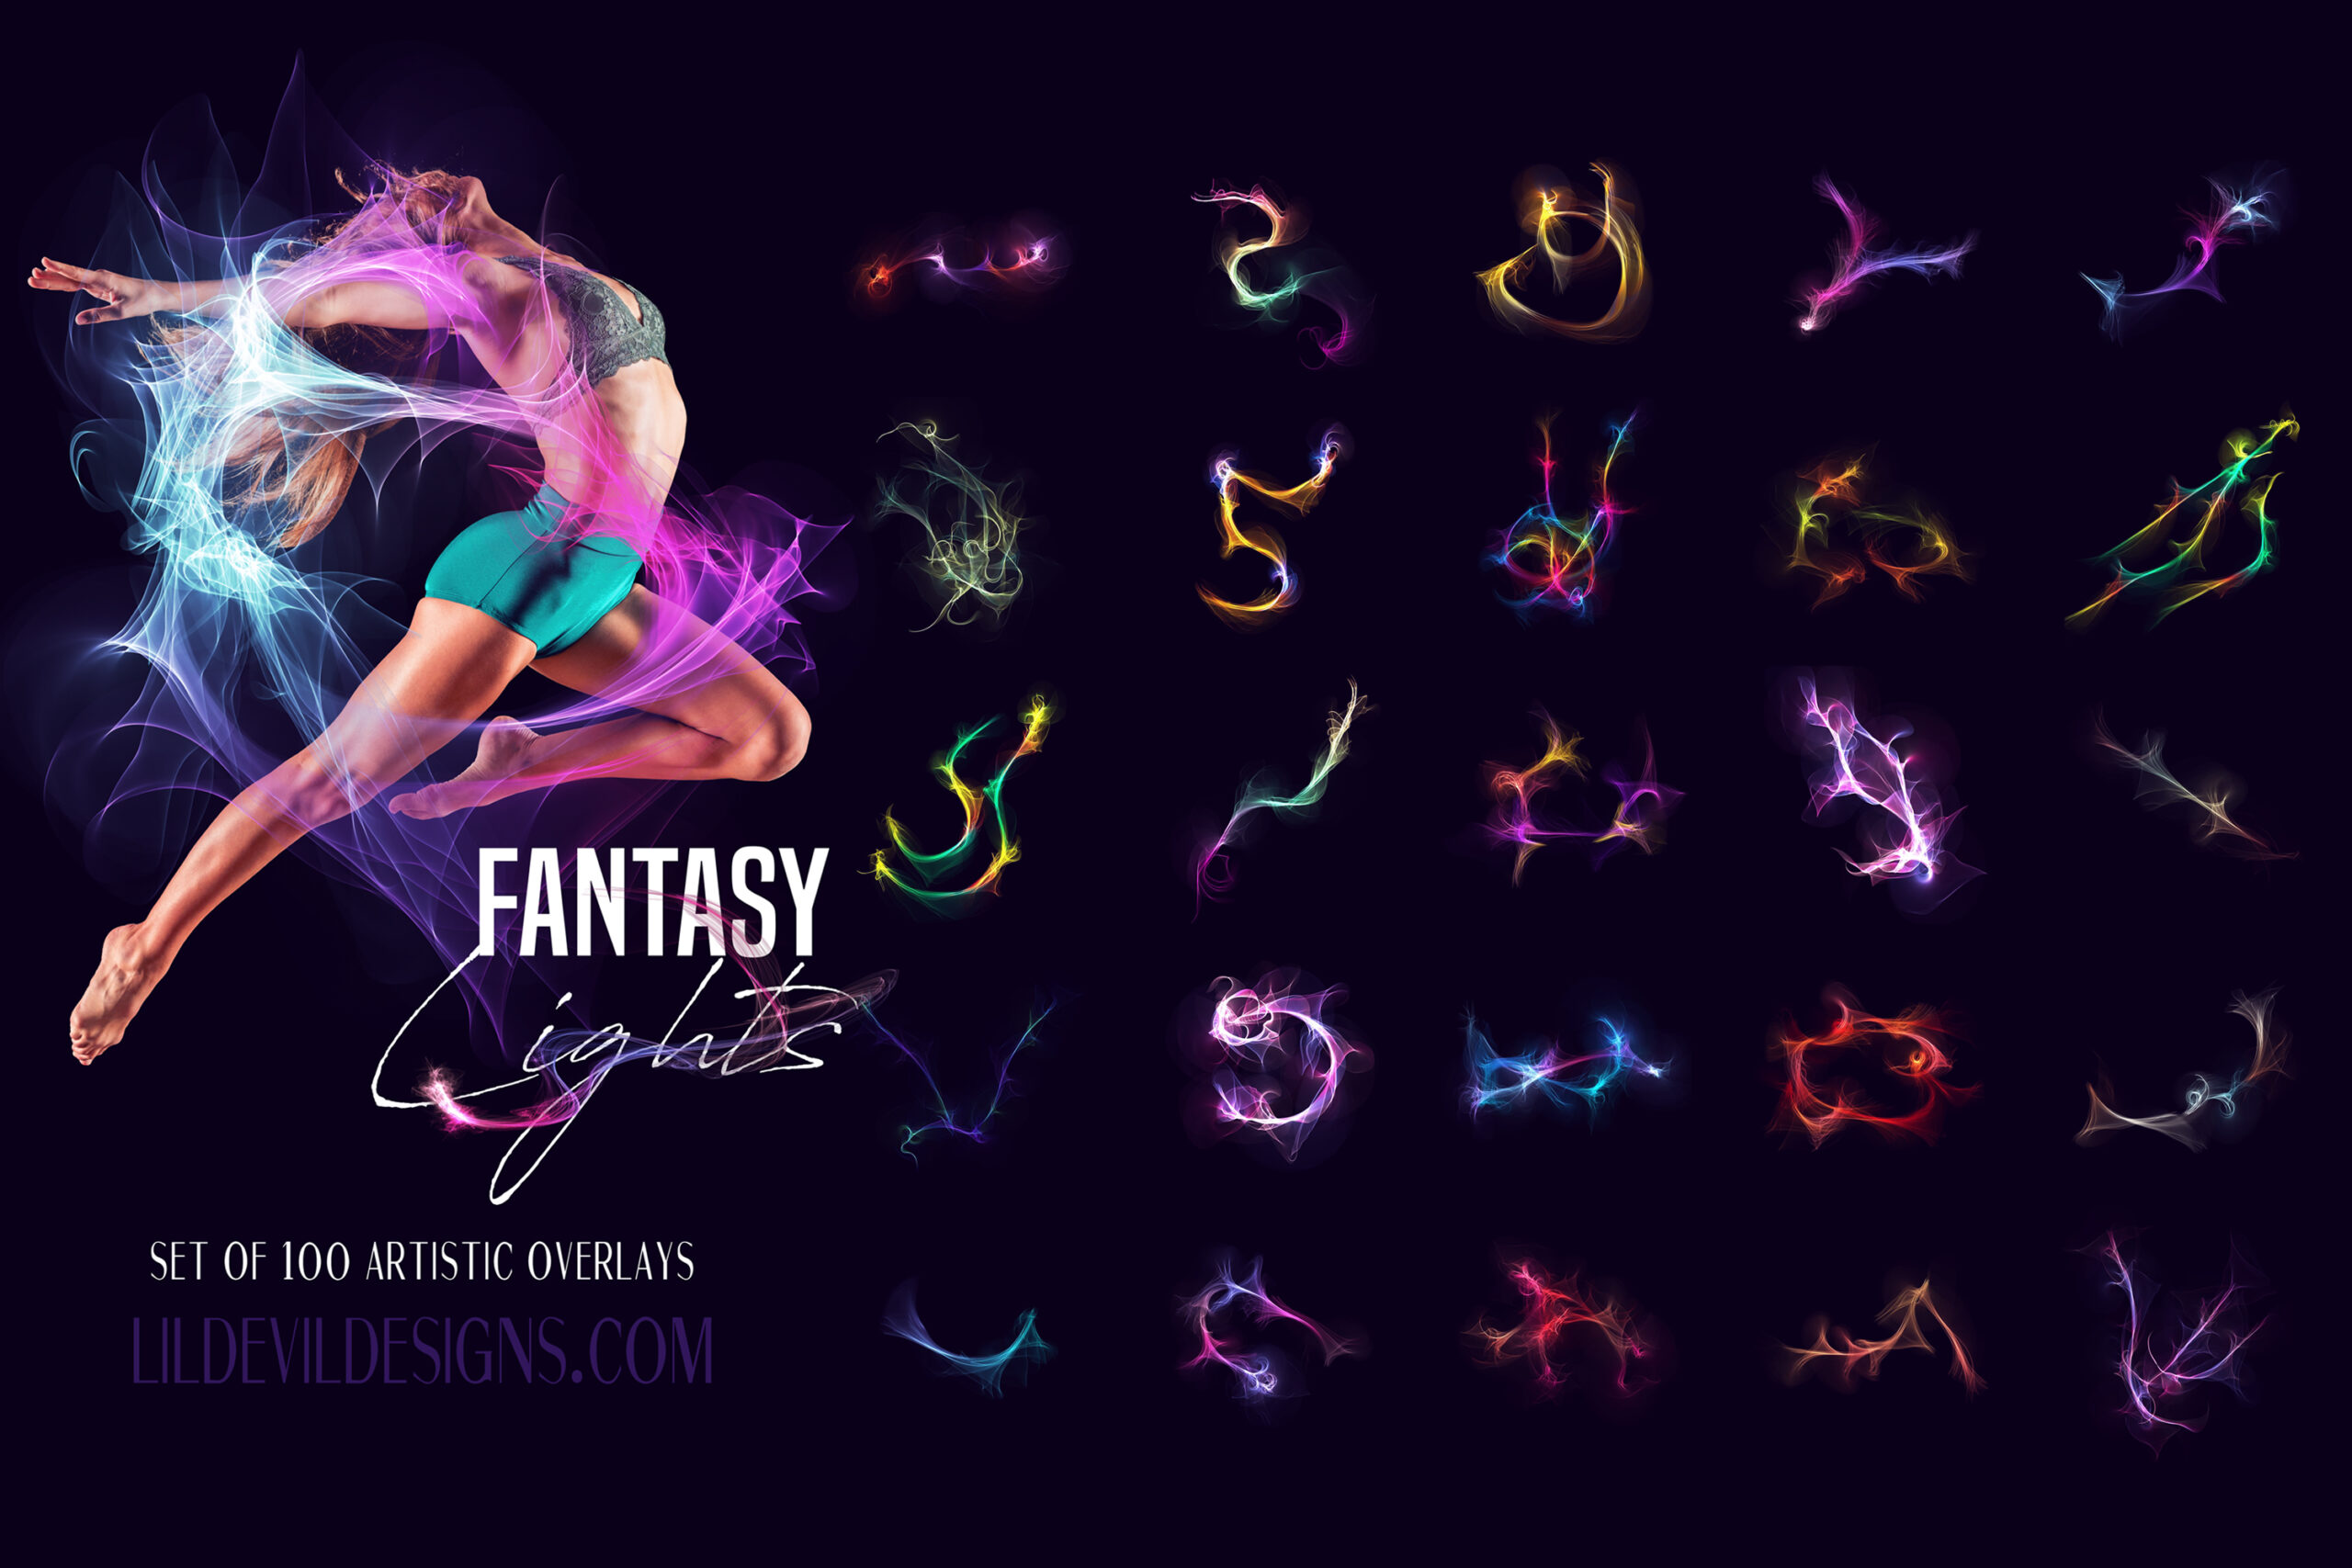 Fantasy Lights Overlays Preview